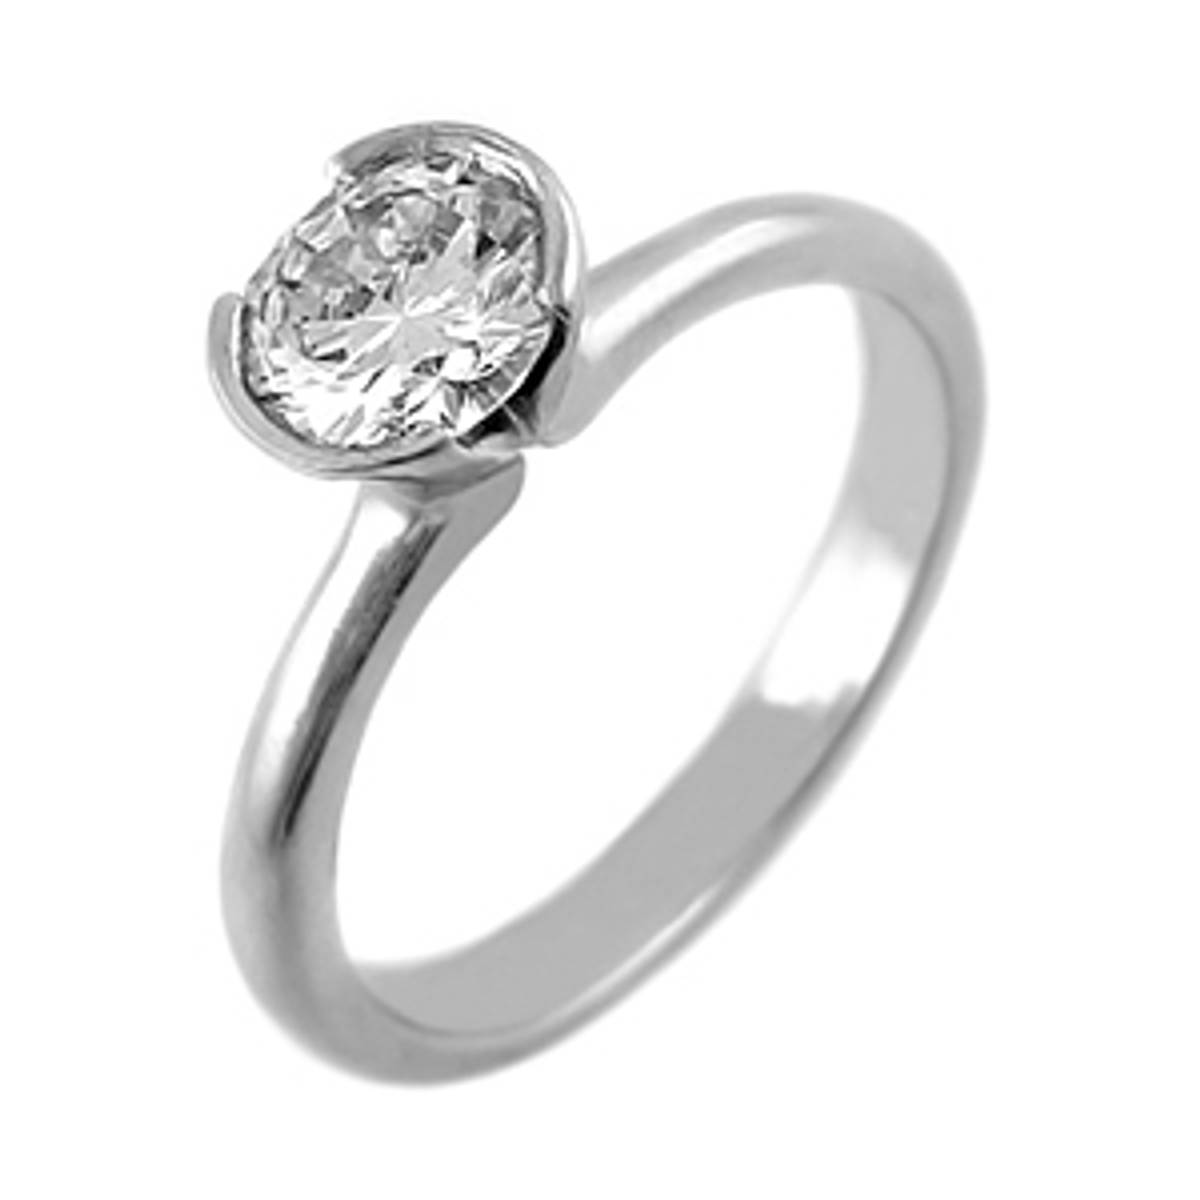 DR69202Single stone brilliant cut diamond ringPictured item: 0.70ct diamond set in platinumAvailable in: 18k gold or platinum